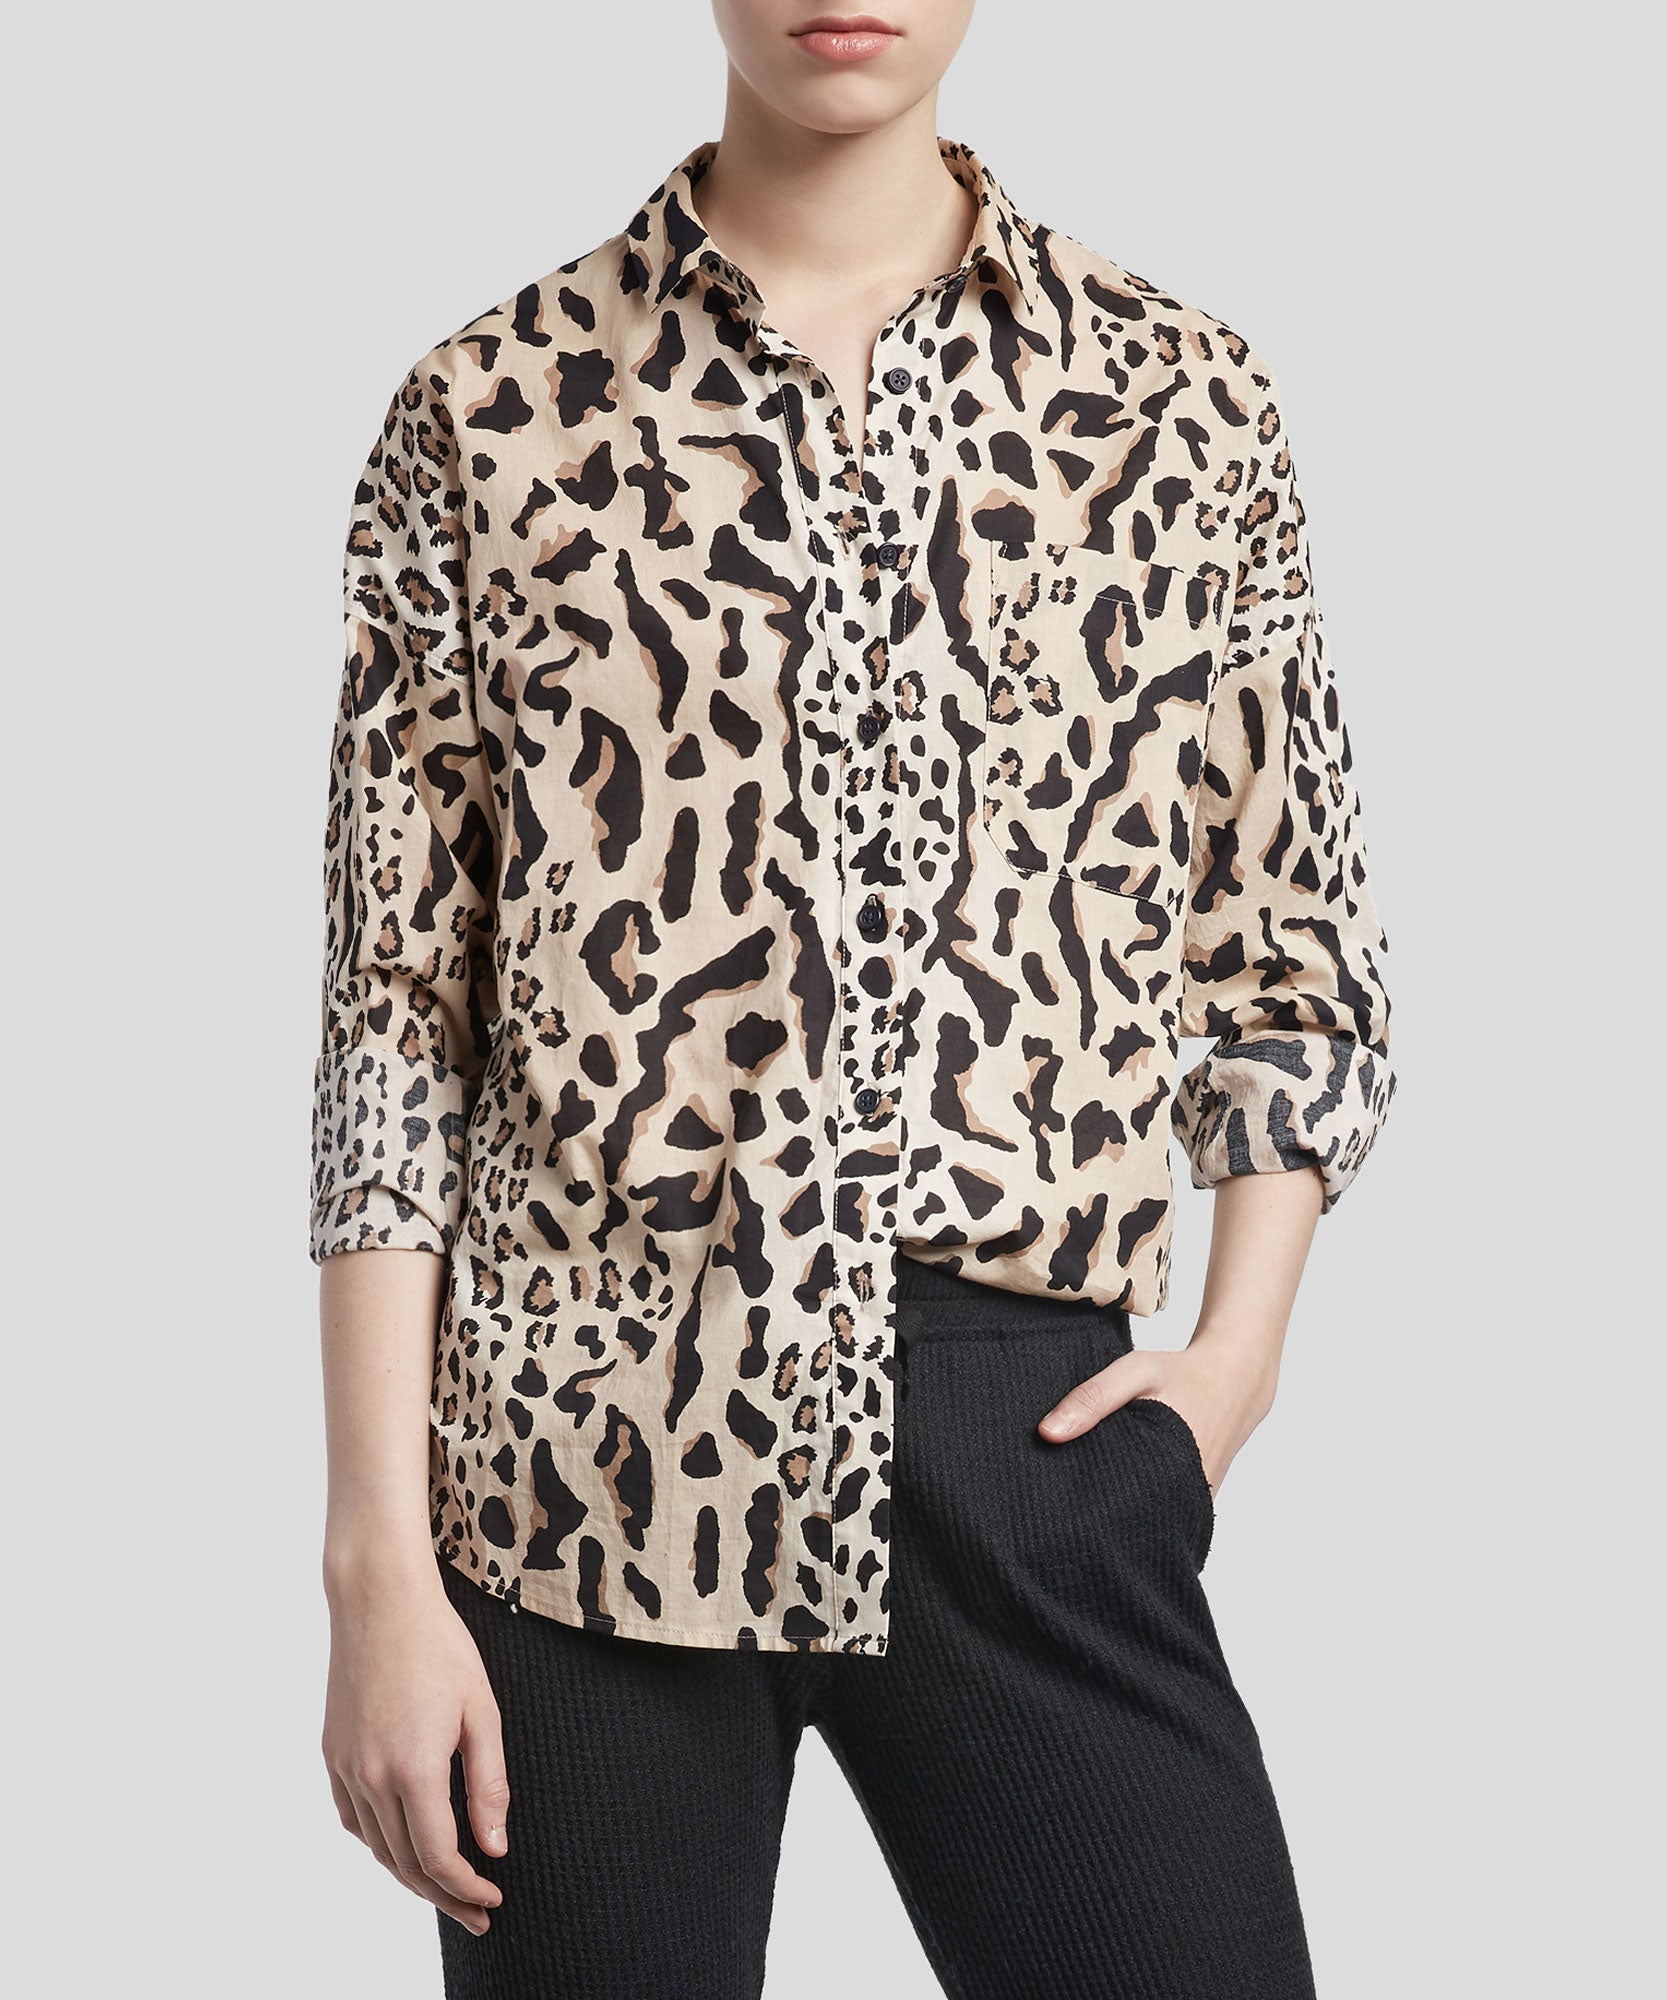 Camel and Black Combo Mixed Leopard Print Boyfriend Shirt - Women's Button Down Shirt by ATM Anthony Thomas Melillo